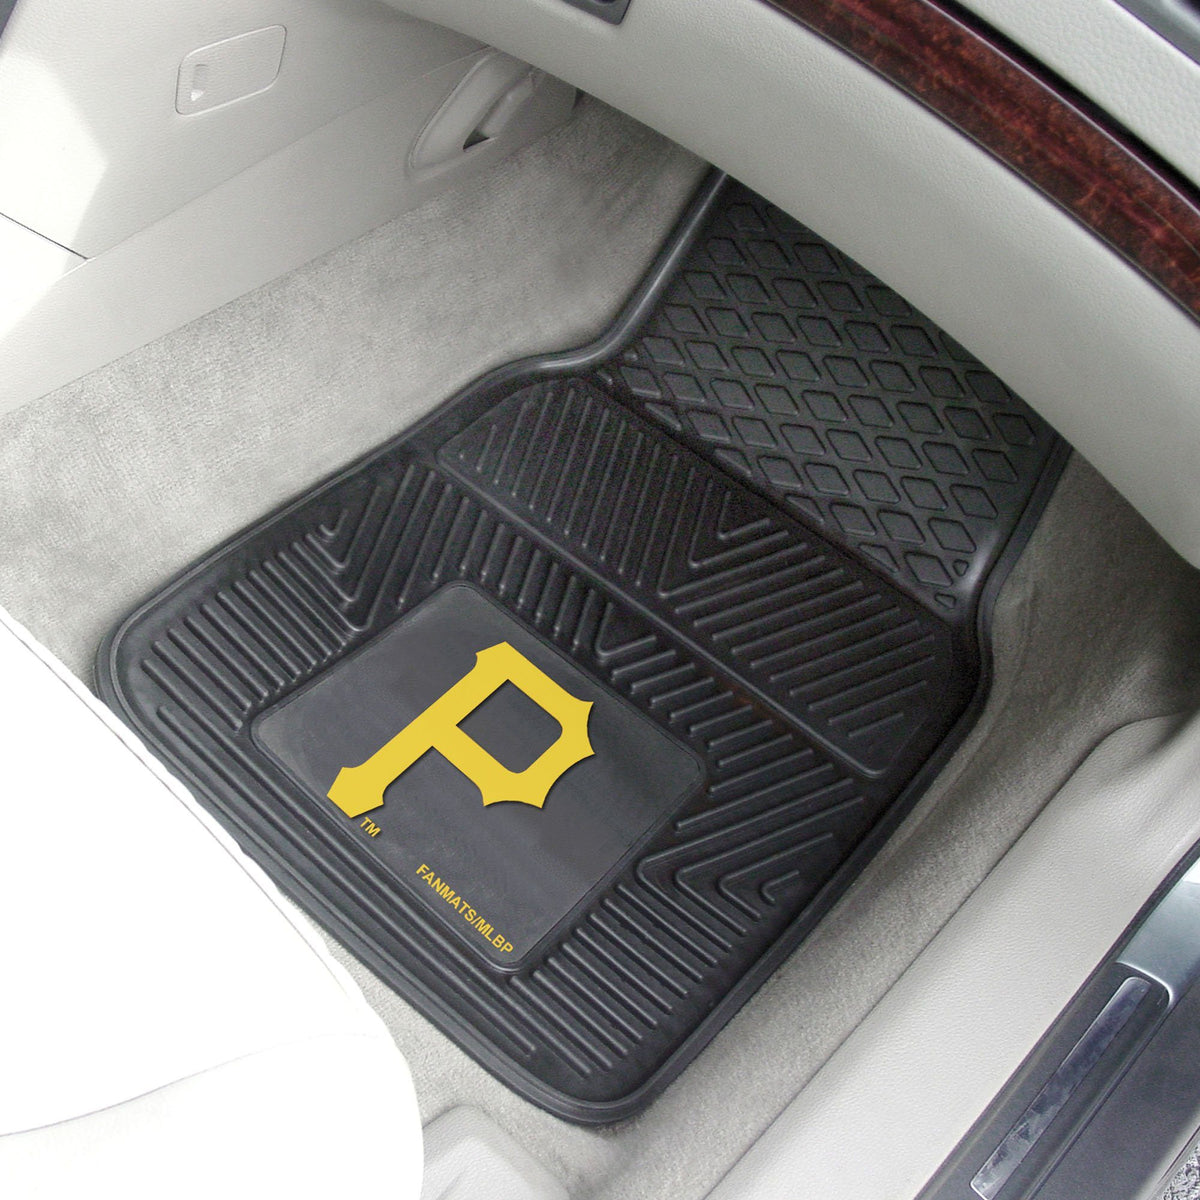 MLB - Vinyl Car Mat, 2-Piece Set MLB Mats, Front Car Mats, 2-pc Vinyl Car Mat Set, MLB, Auto Fan Mats Pittsburgh Pirates